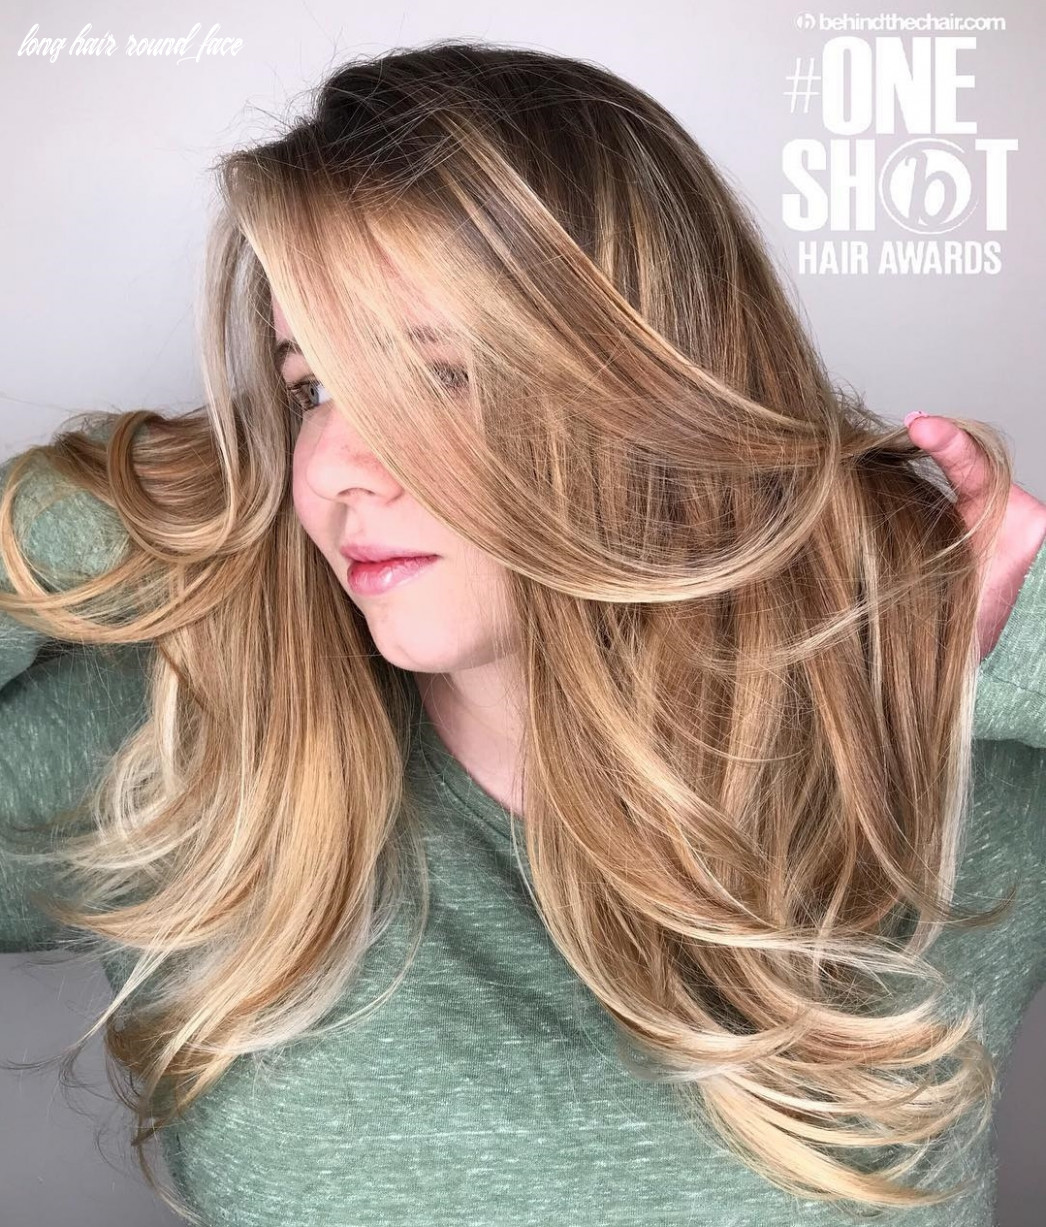 11 amazing haircuts for round faces hair adviser long hair round face